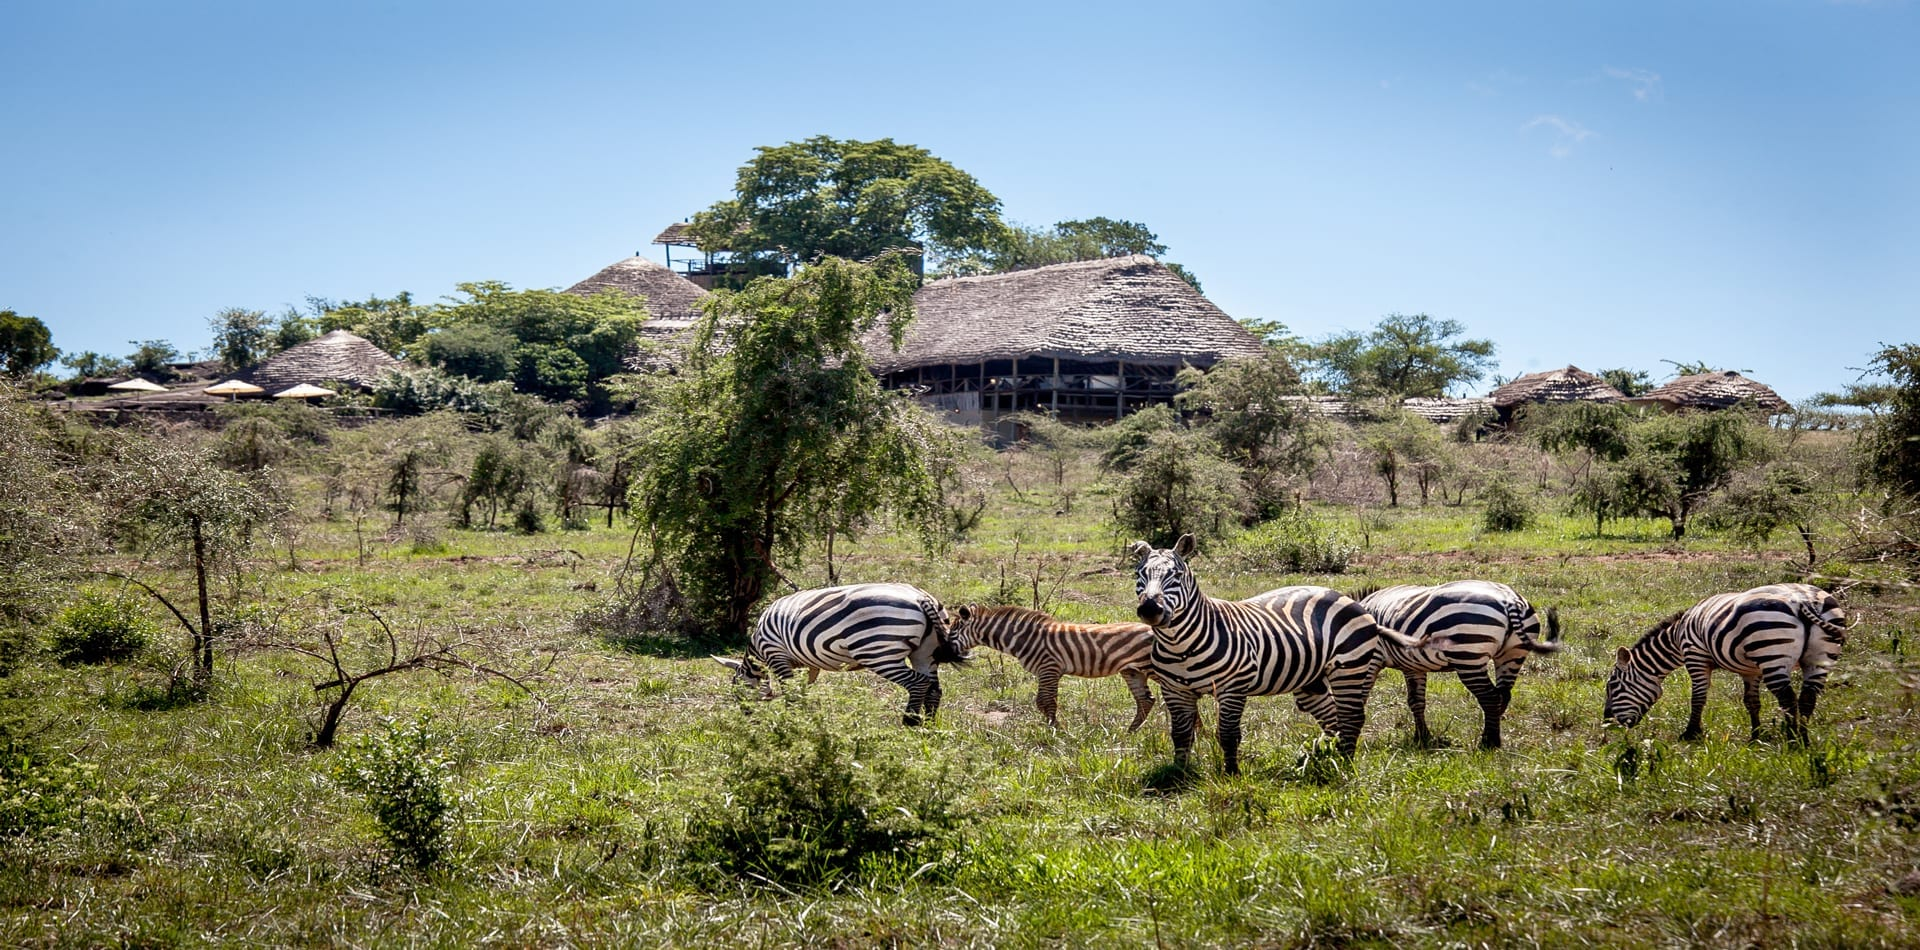 Apoka Safari Exterior with Zebras in Uganda